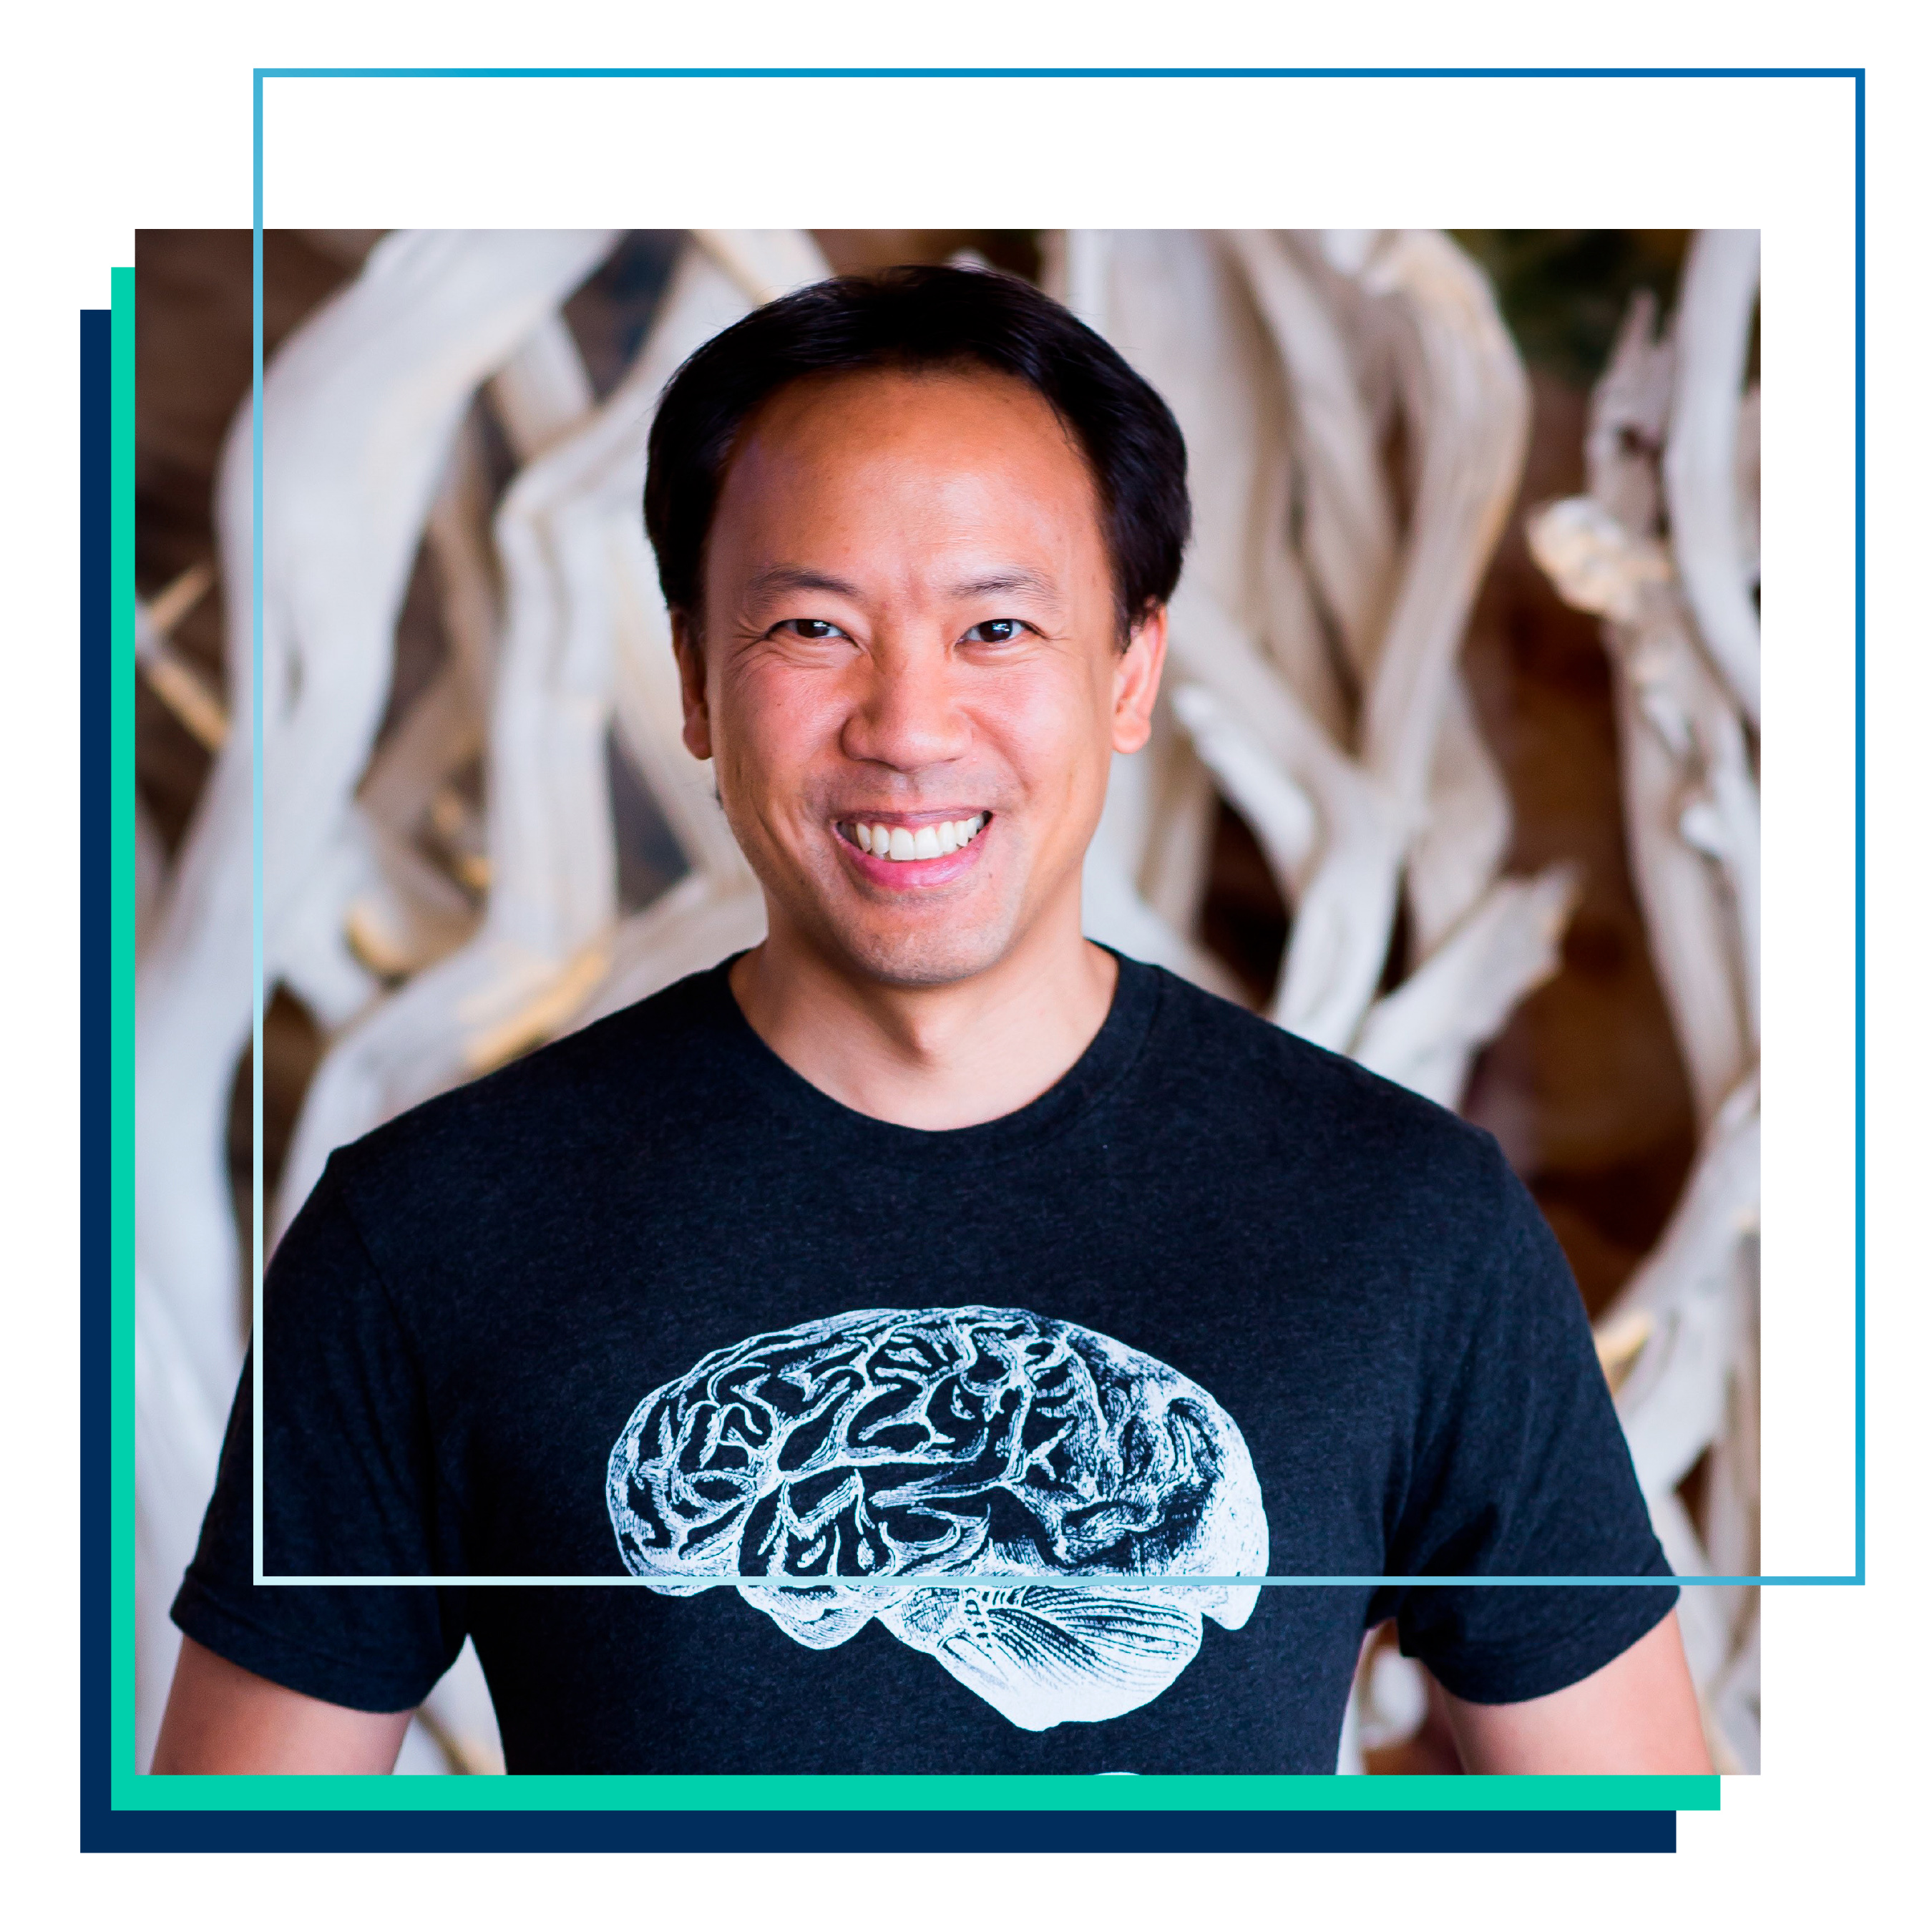 Wednesday's General Session will feature Jim Kwik – Brain & Memory Coach, Author, and CEO of Kwik Learning